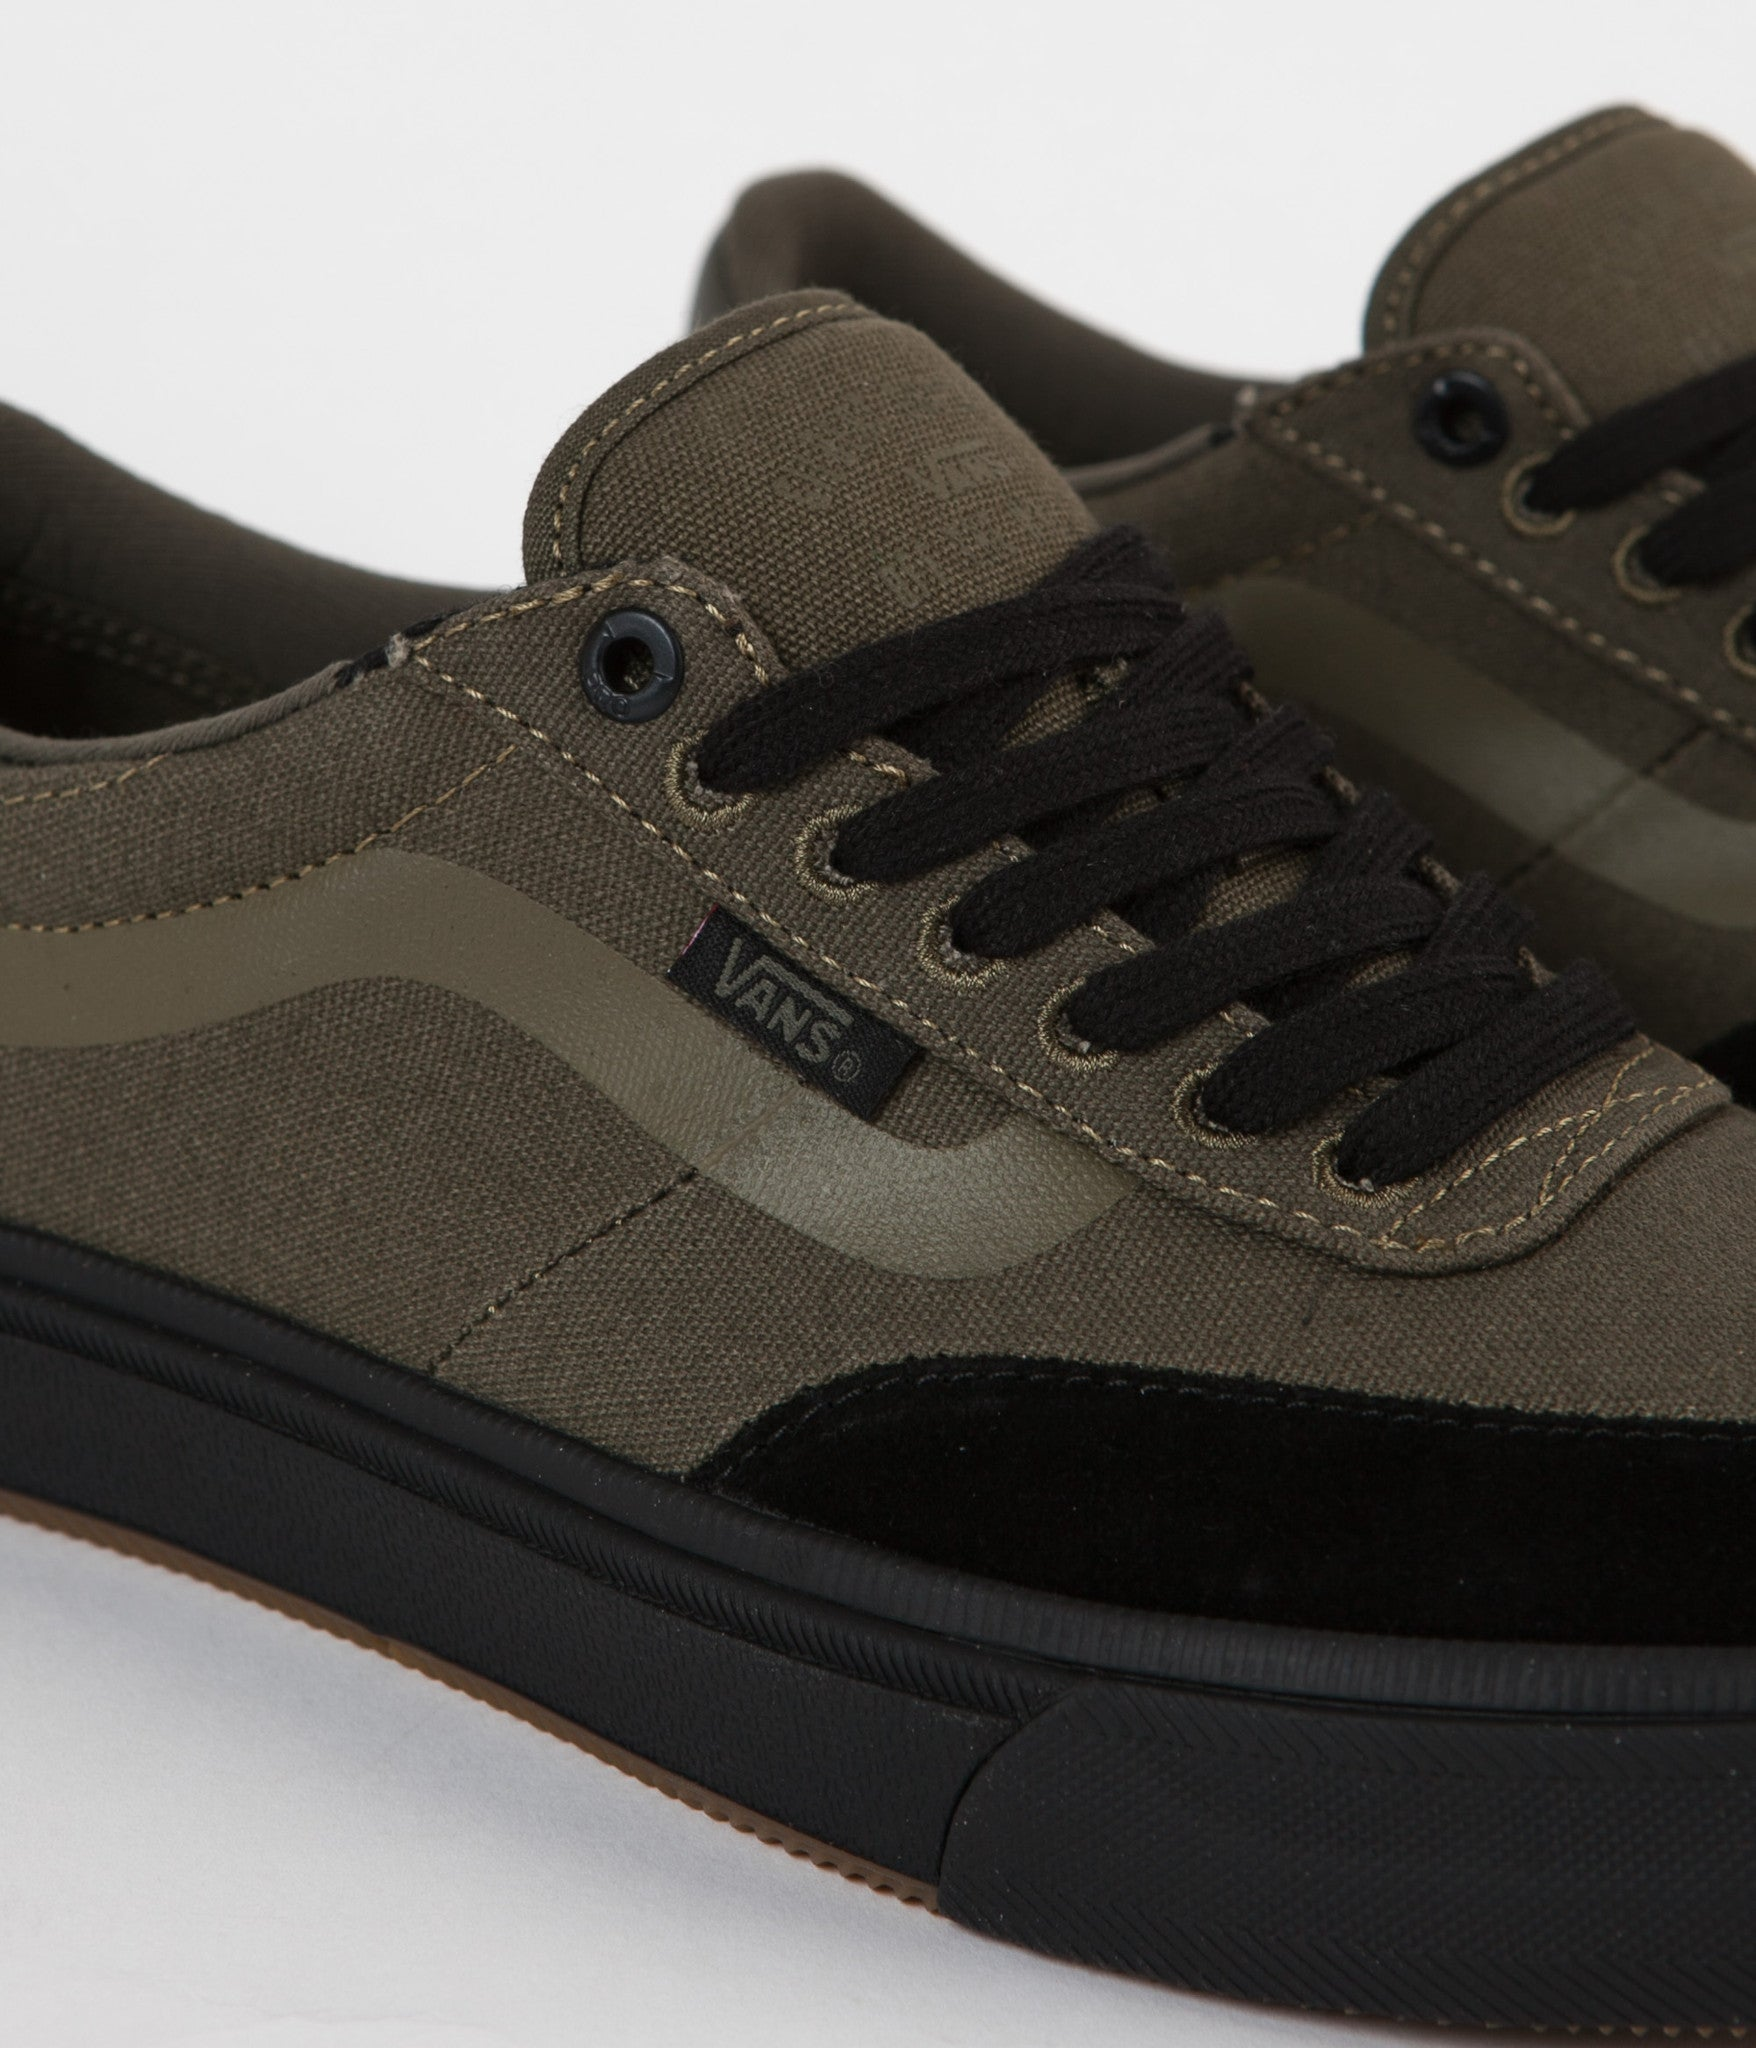 5b4de3332b ... Vans Gilbert Crockett 2 Pro Shoes - Ivy Green   Black ...